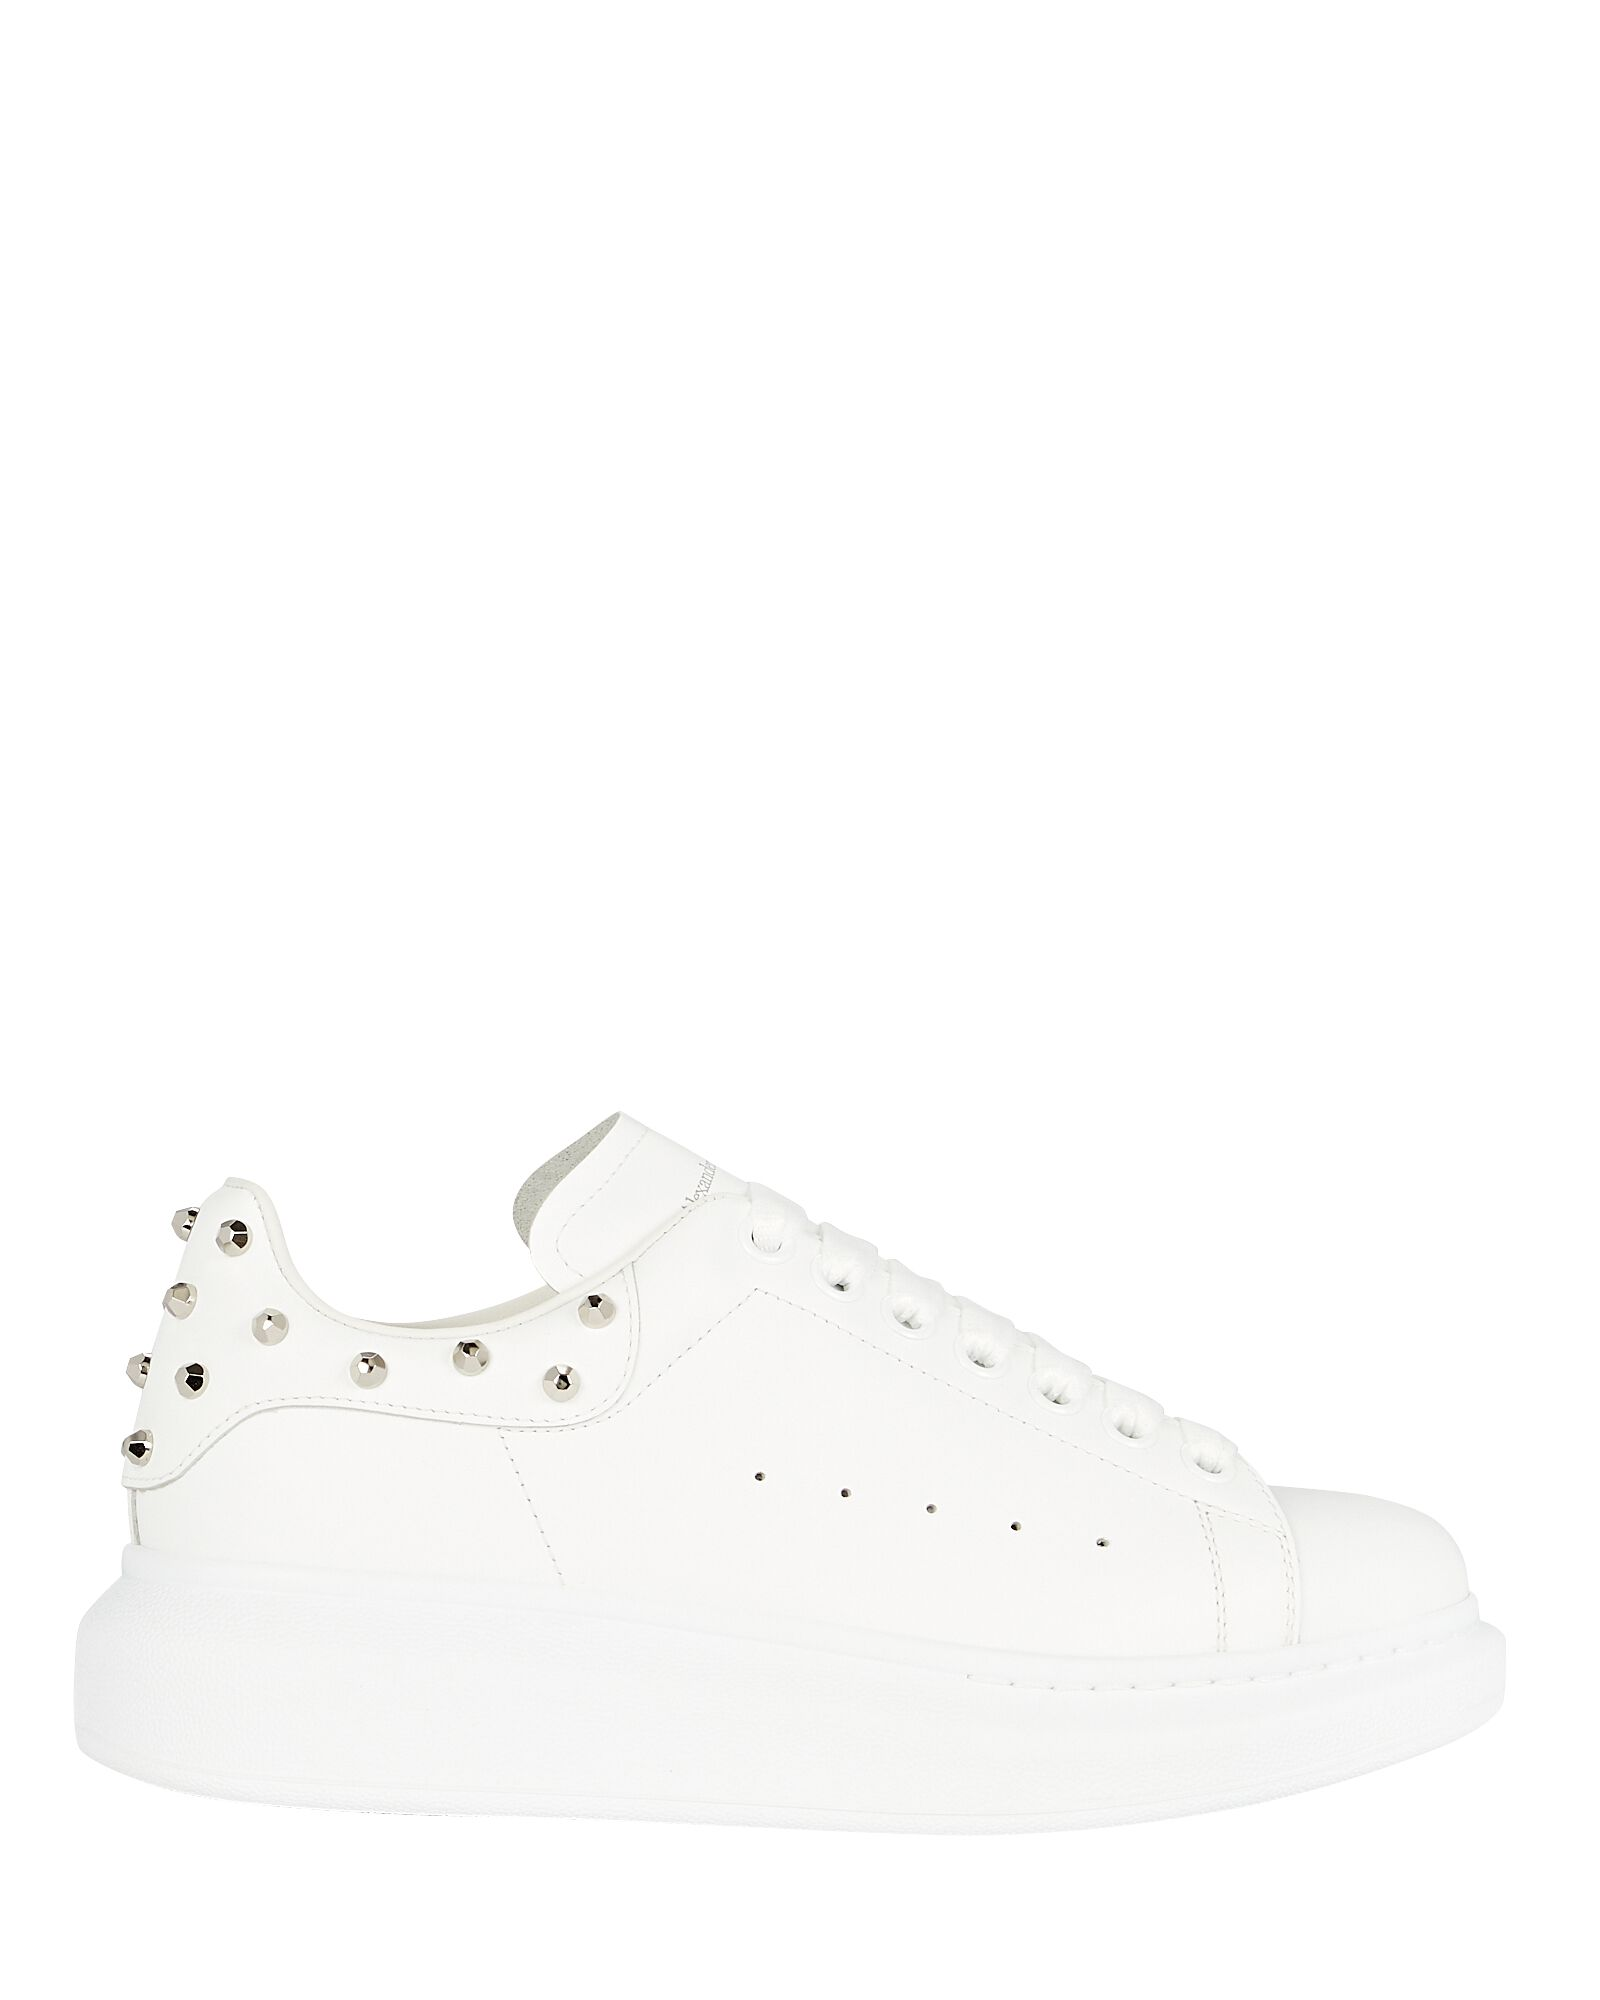 Oversized Studded Leather Sneakers, WHITE, hi-res